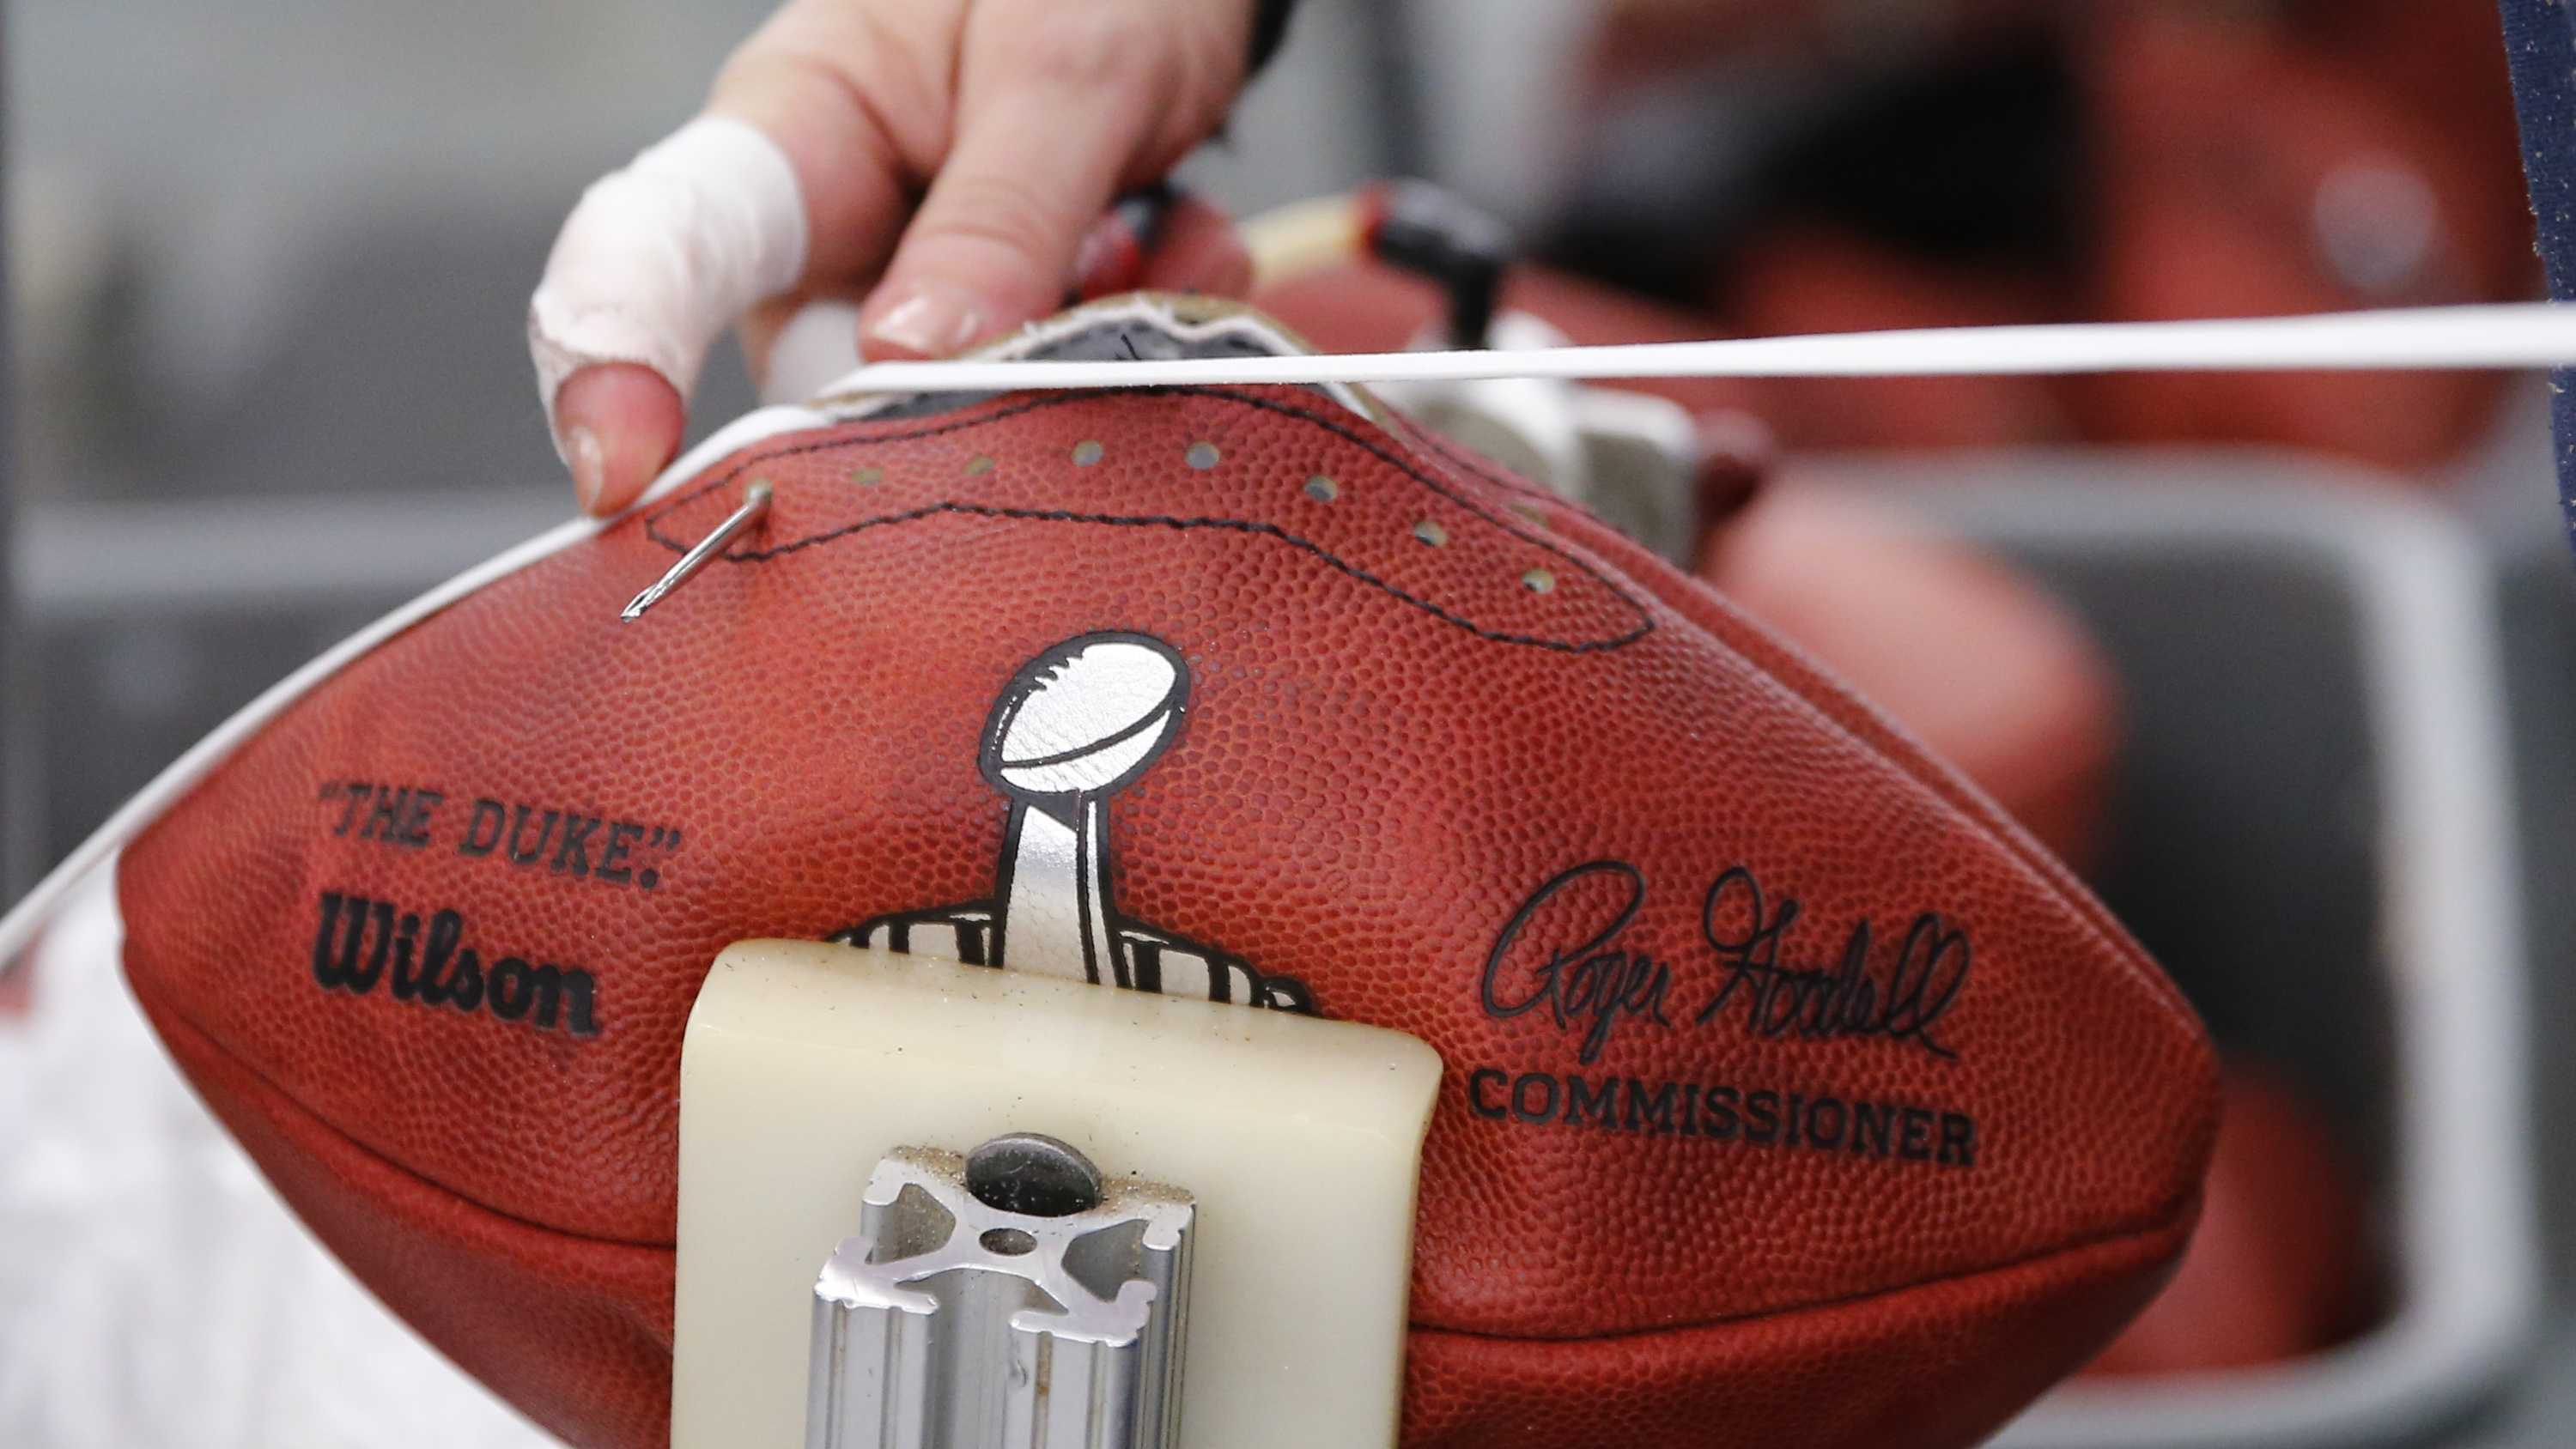 BALL CONTROL: Footballs are sent directly to teams. Equipment managers can brush them and even use a damp towel to rub off the oil used to preserve the leather to the preferences of each quarterback. The quarterbacks can even practice with the footballs during a game week as long as the footballs remain in good enough condition to pass the referee's inspection as a new ball. Each team brings at least 12 balls each, so Tom Brady threw footballs provided by the Patriots while Andrew Luck handled footballs brought by the Colts.